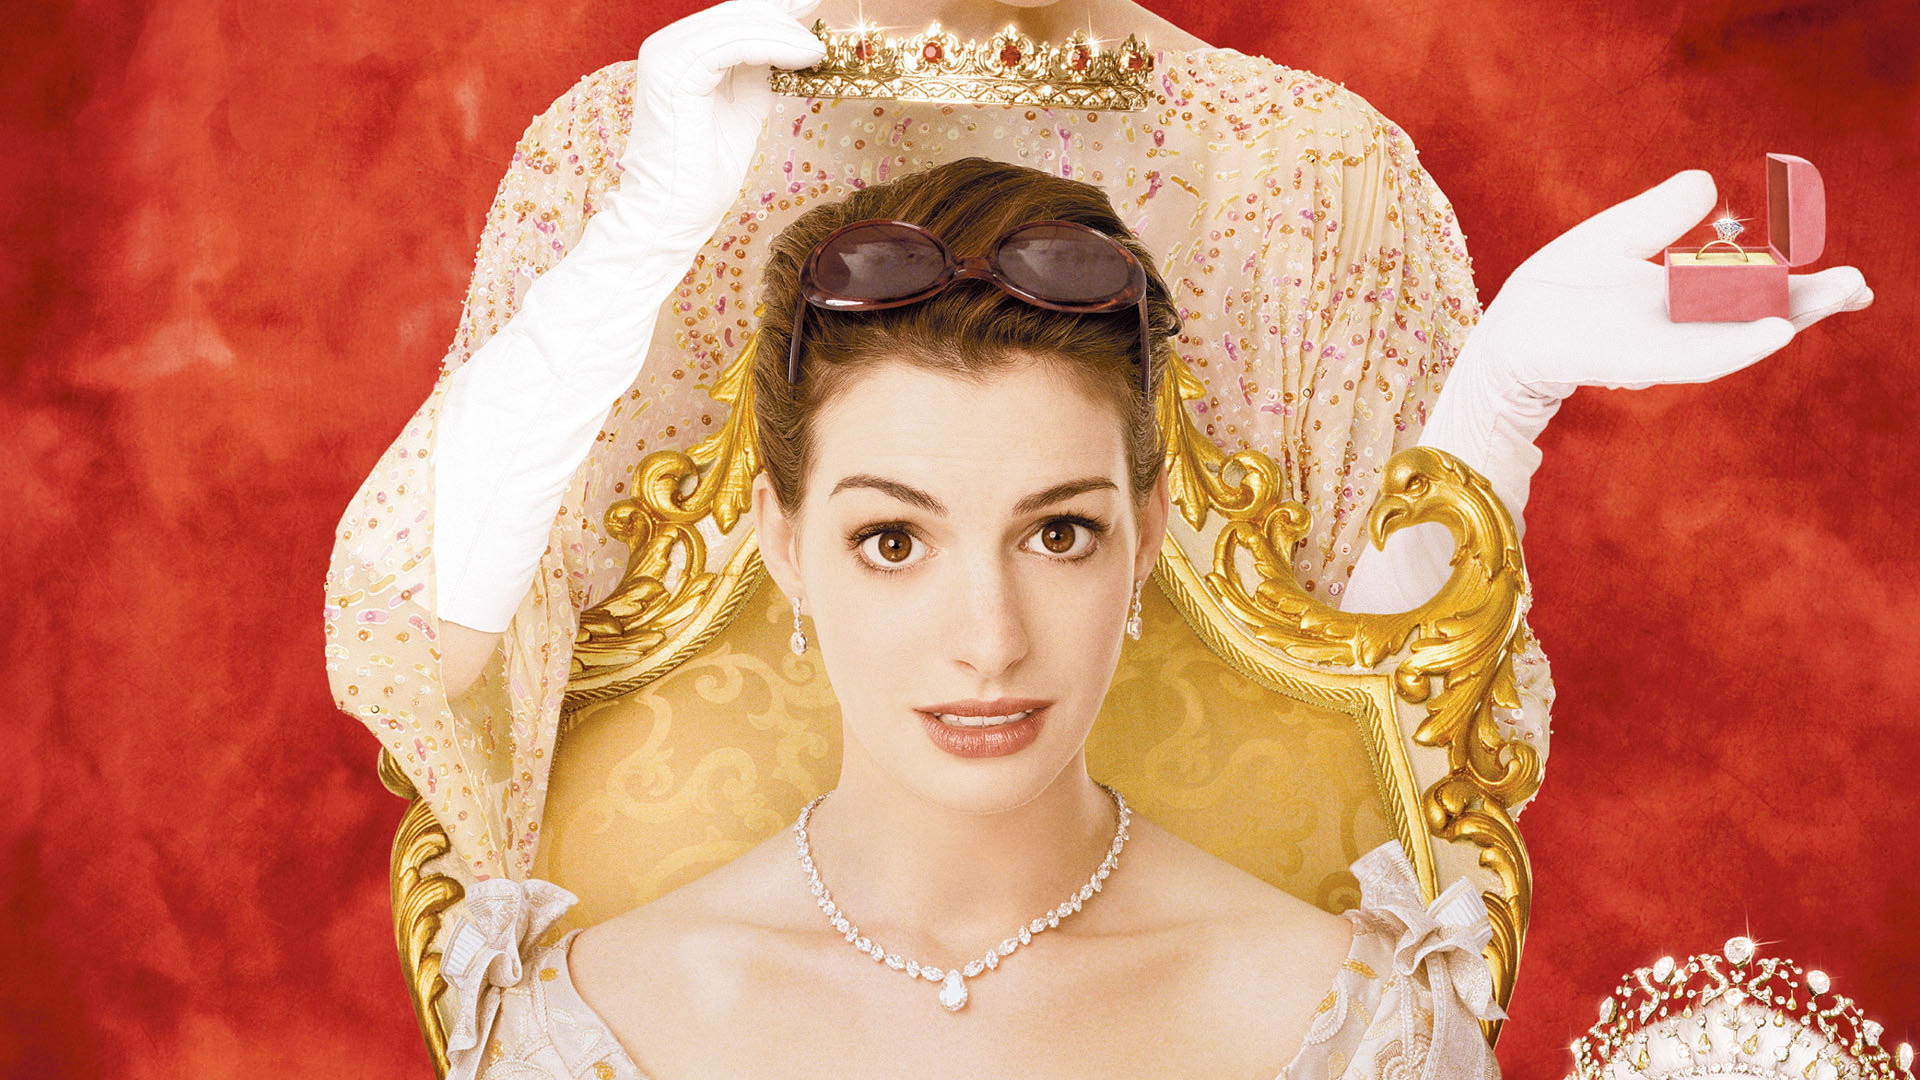 Princess Diaries 3?!